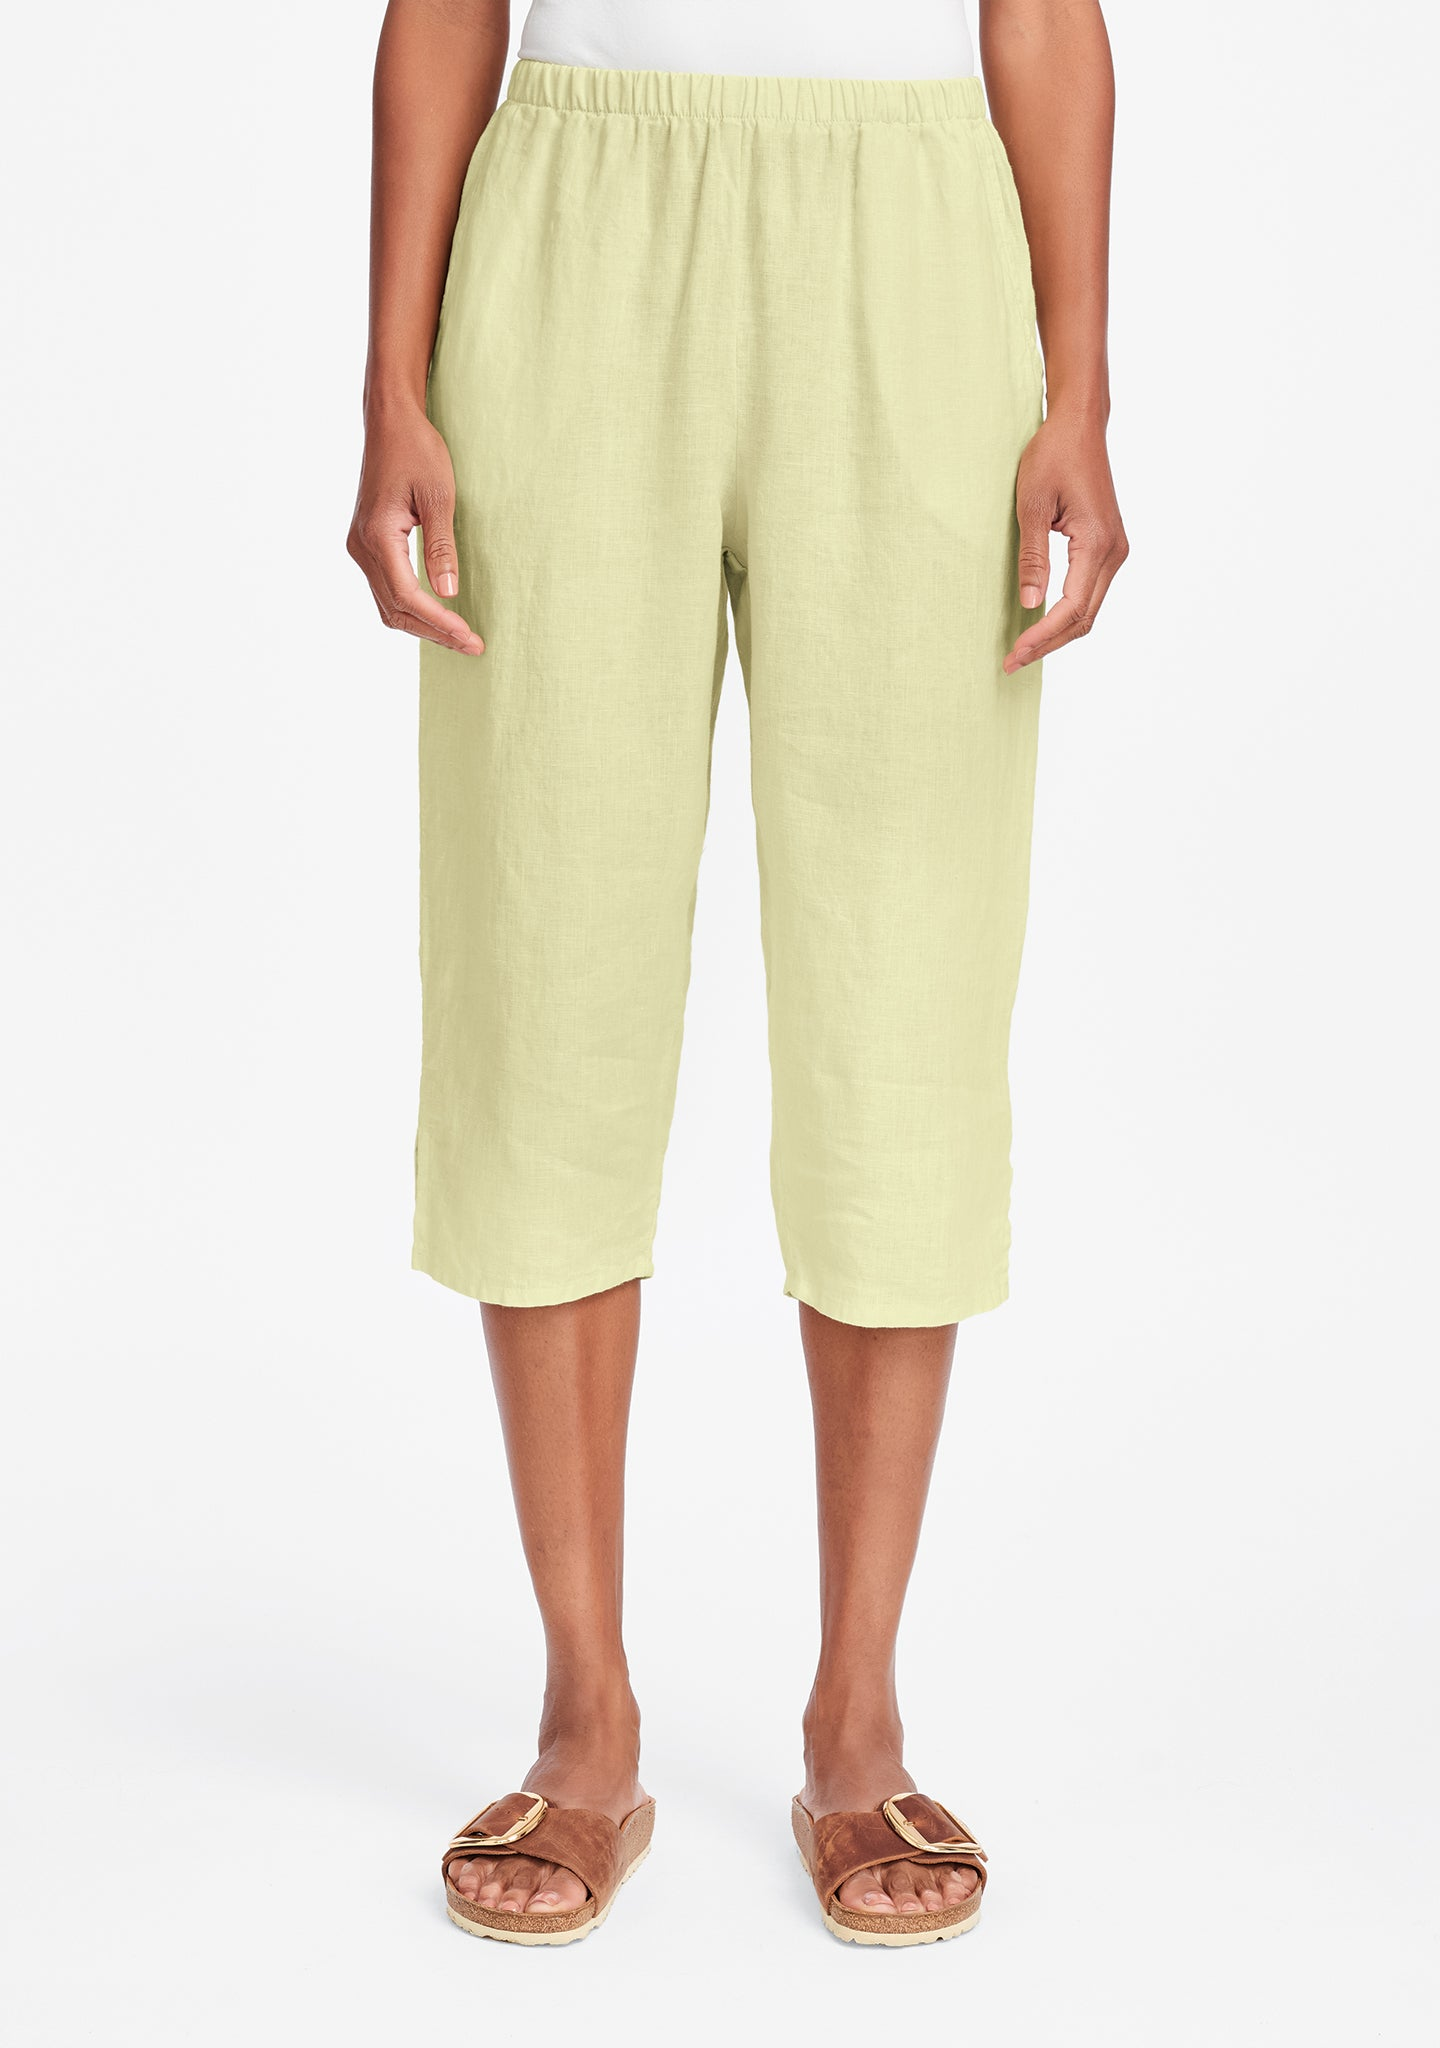 pedal pant linen crop pants yellow